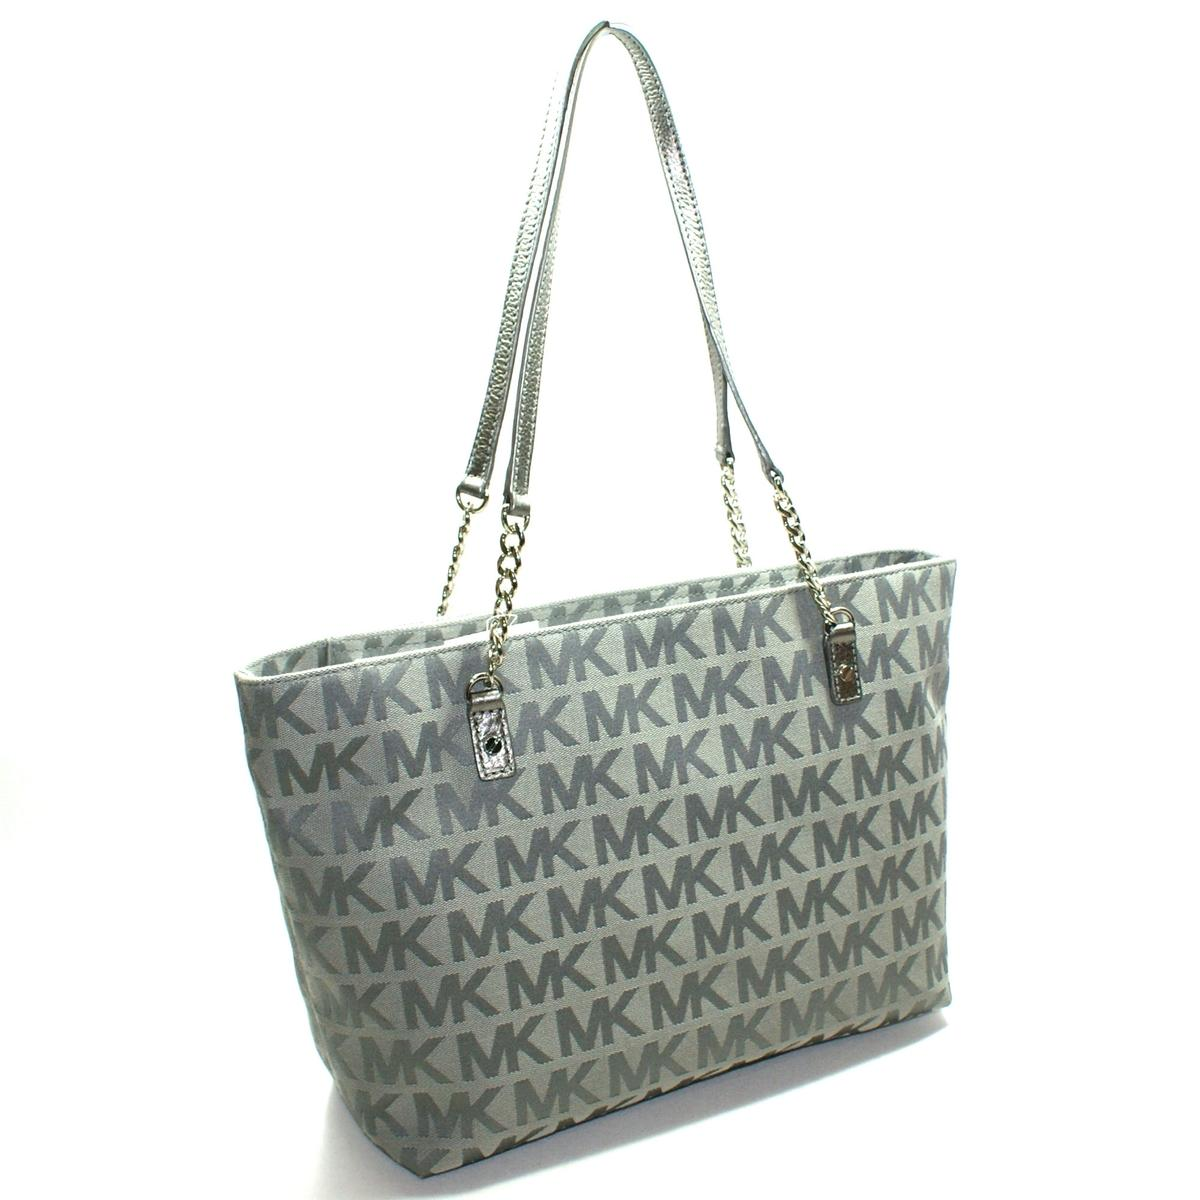 Michael Kors Jet Set bag can accentuate any outfit. Michael Kors Jet Set Tote bags help achieve remarkable fashion statement for both men and women. Michael Kors bag is an important wardrobe essential and is considered an international rage in the fashion world.